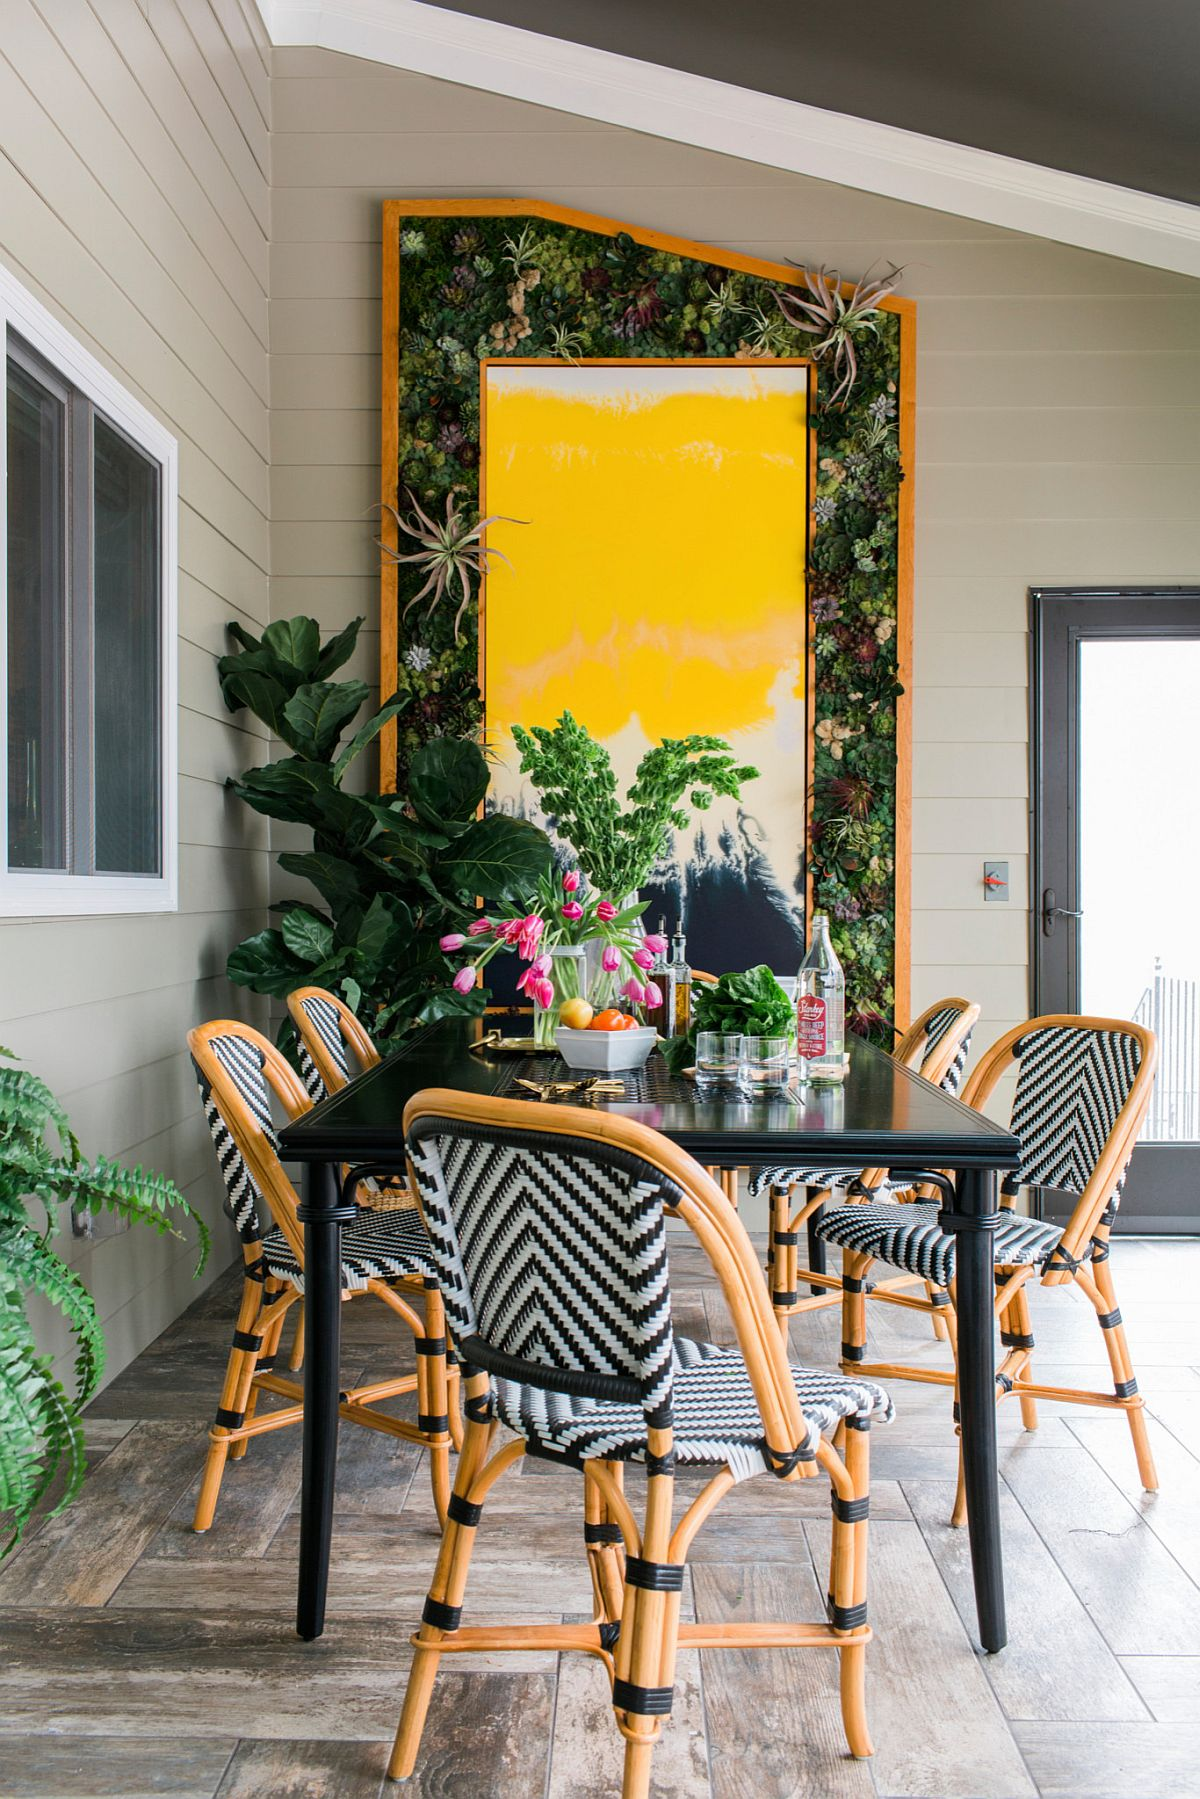 Stylish screened porch with gorgeous pops of yellow and green and chairs with chevron pattern